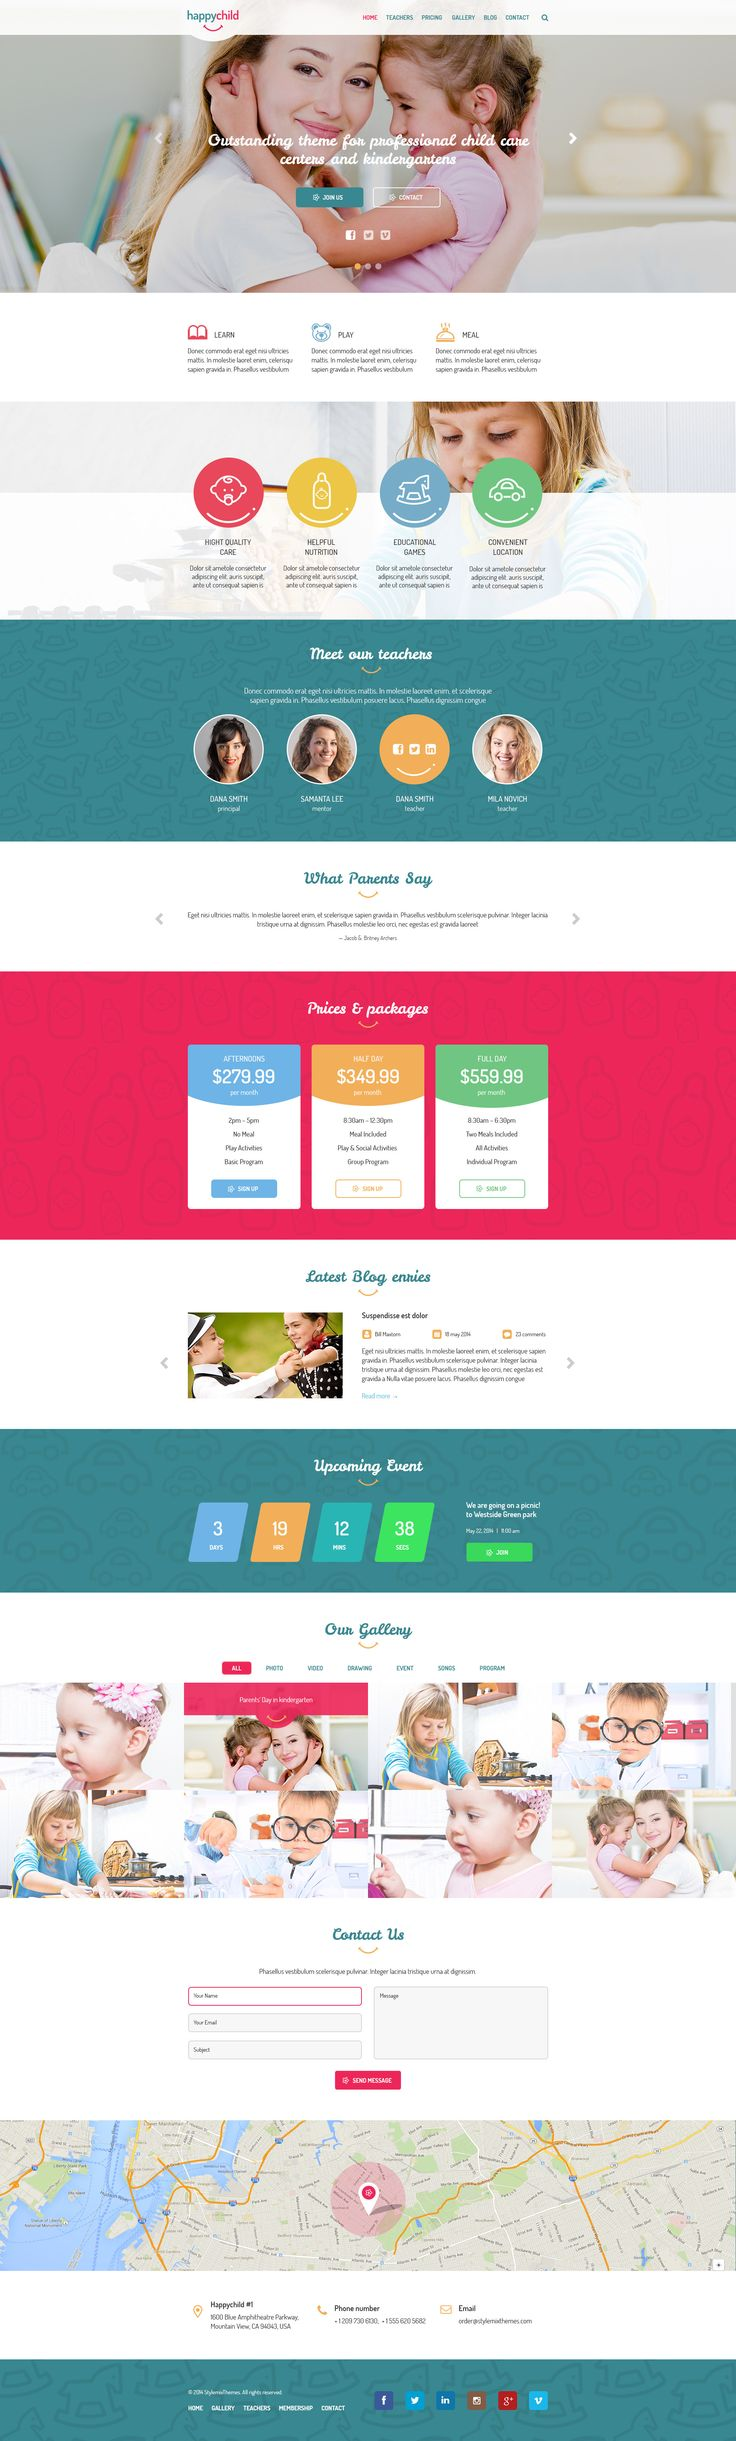 HappyChild is the outstanding PSD theme created for professional #child care and #kindergartens.    The layout is designed based on the #Bootstrap 3.1 grid standards. Please note photos & images are not included. #school #website #design